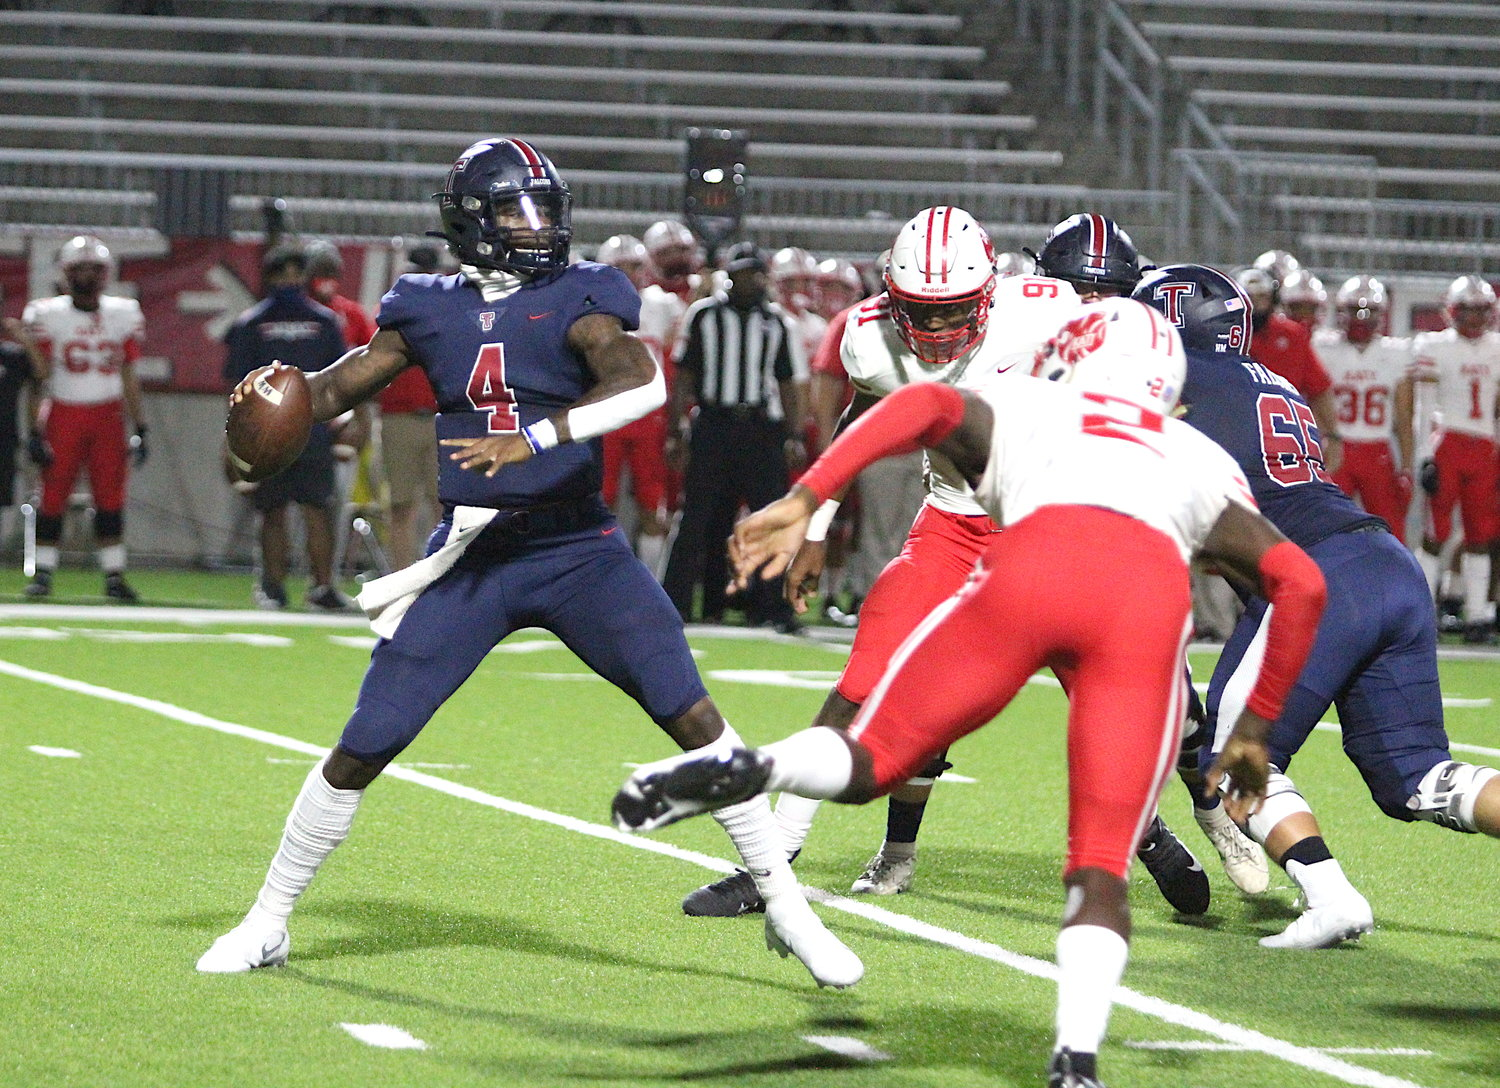 Tompkins senior quarterback Jalen Milroe (4) stands tall in the pocket as Katy junior defensive end Malick Sylla attempts to rush during the Falcons' 24-19 win over Katy on Nov. 5 at Legacy Stadium.